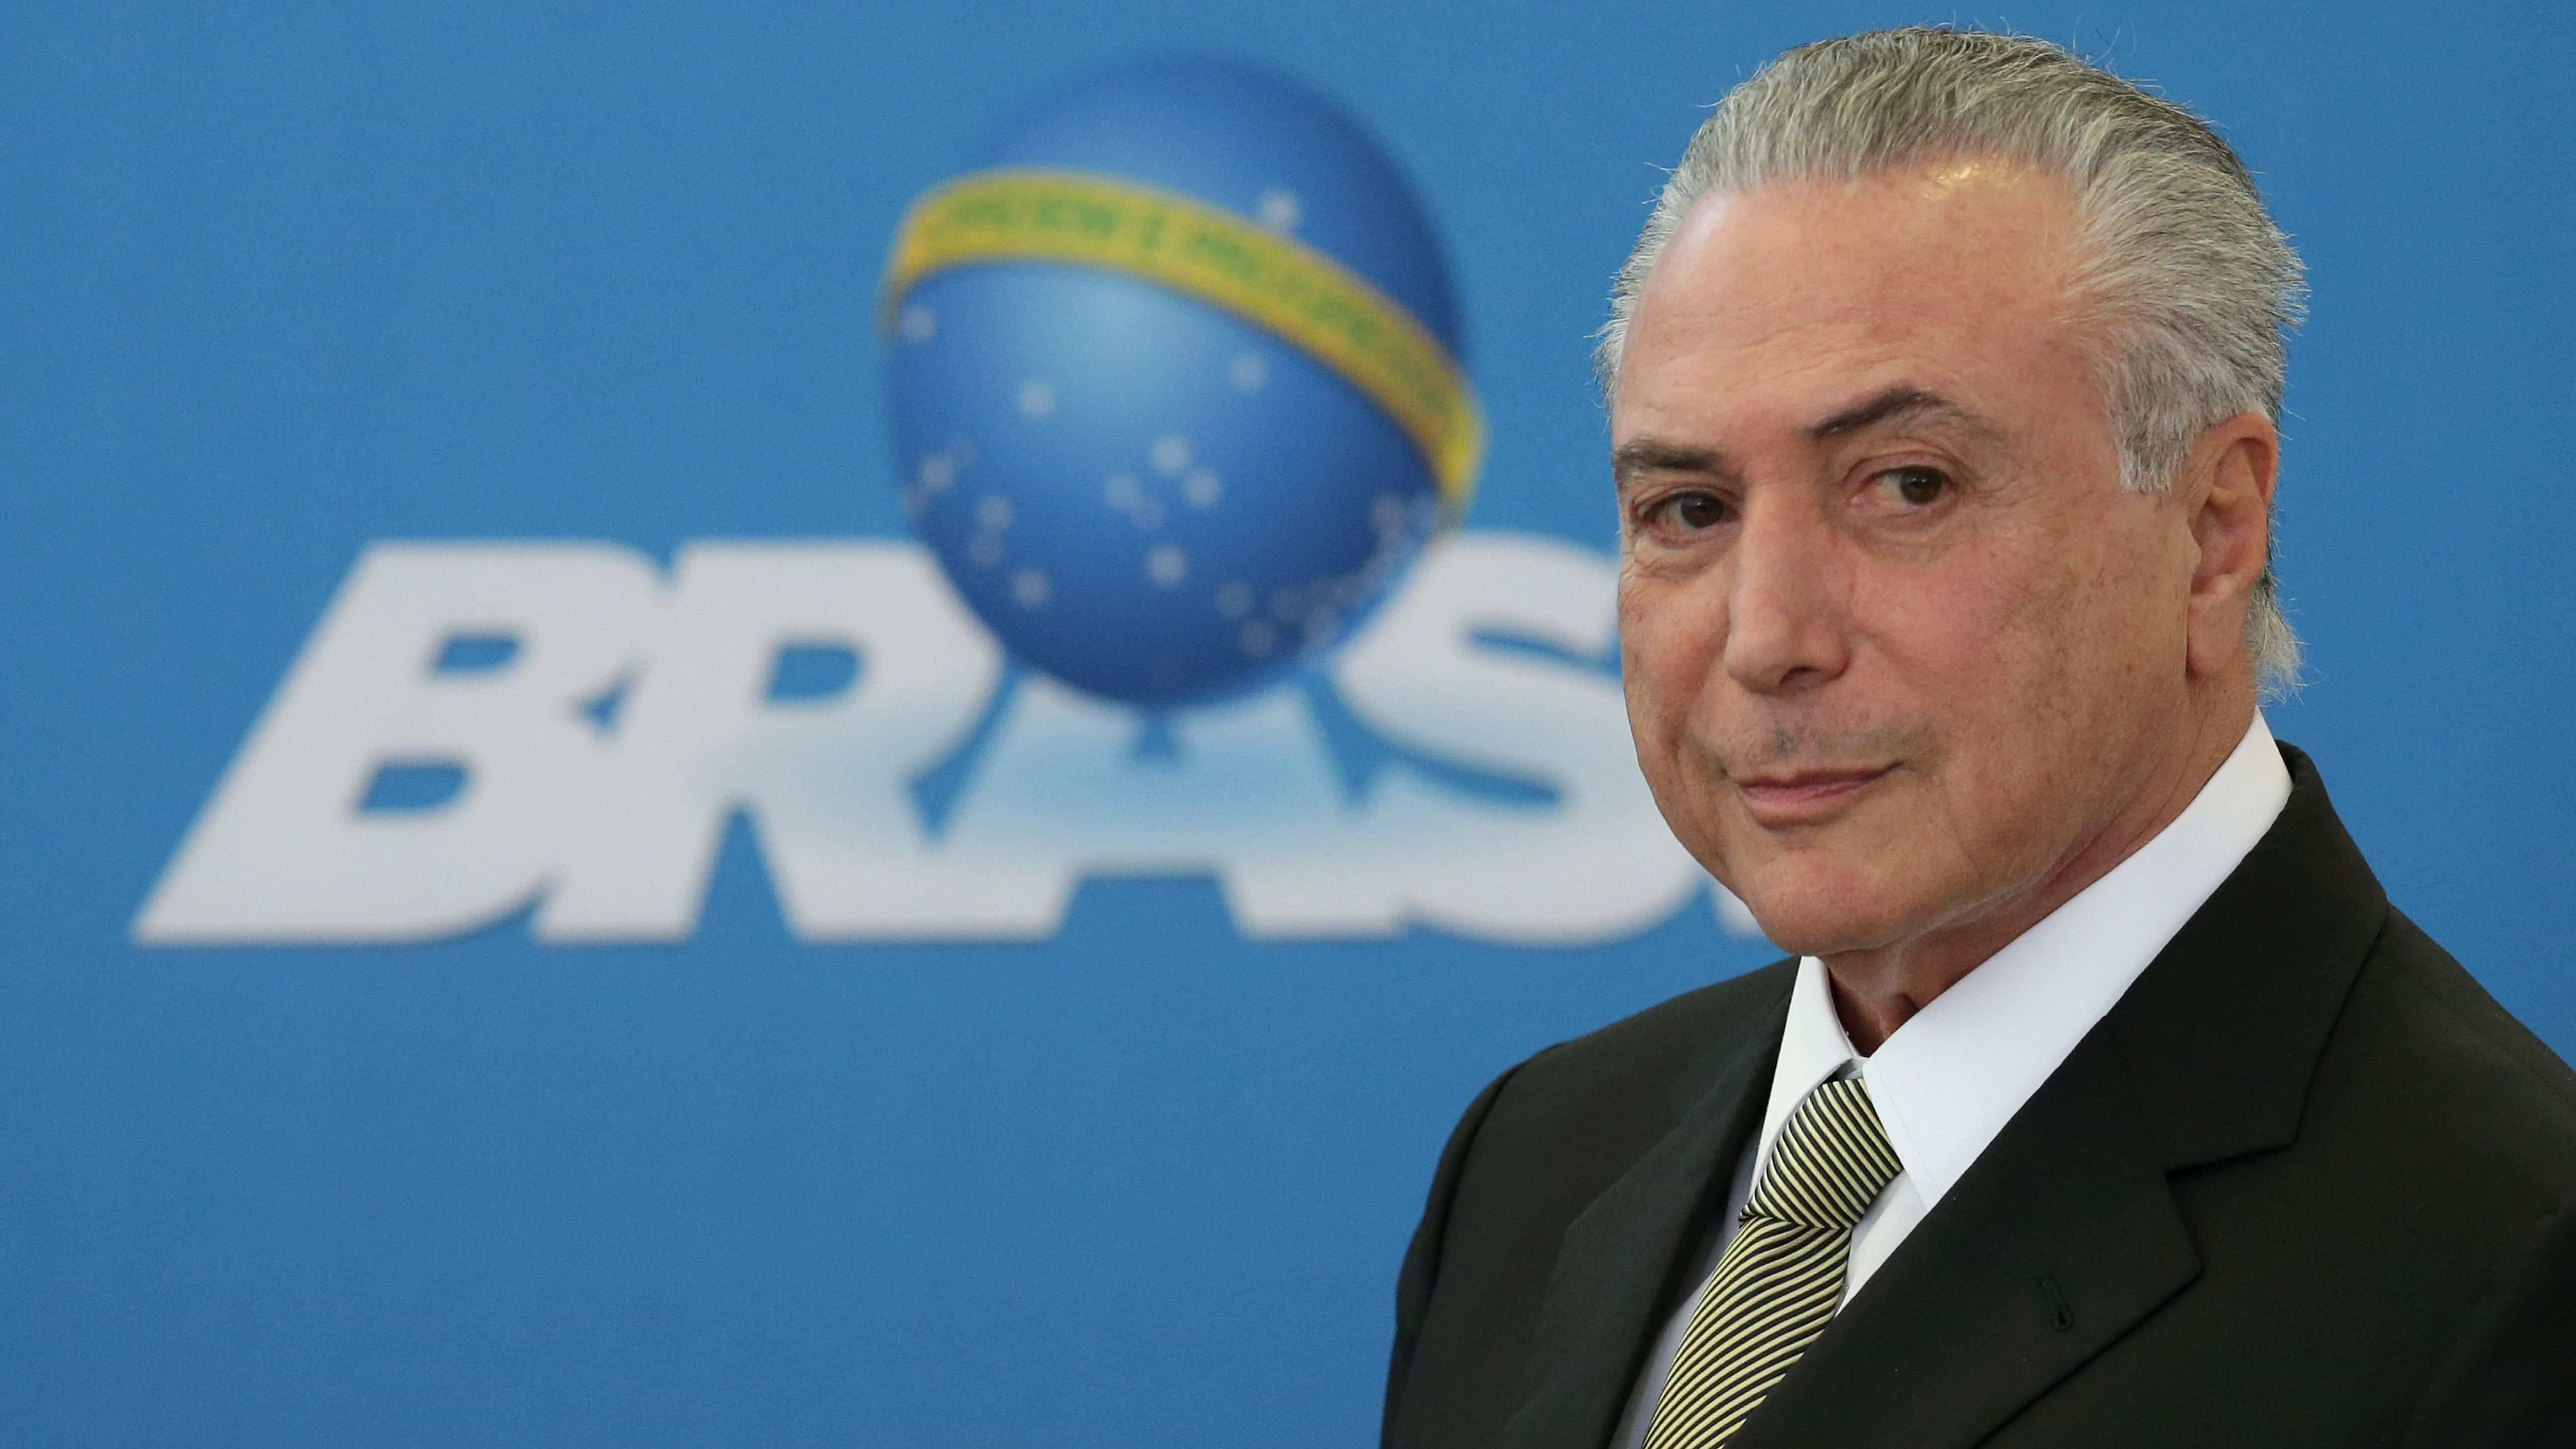 Mr. Temer arrives for the inauguration of the new presidents of state companies in Brasilia on June 1